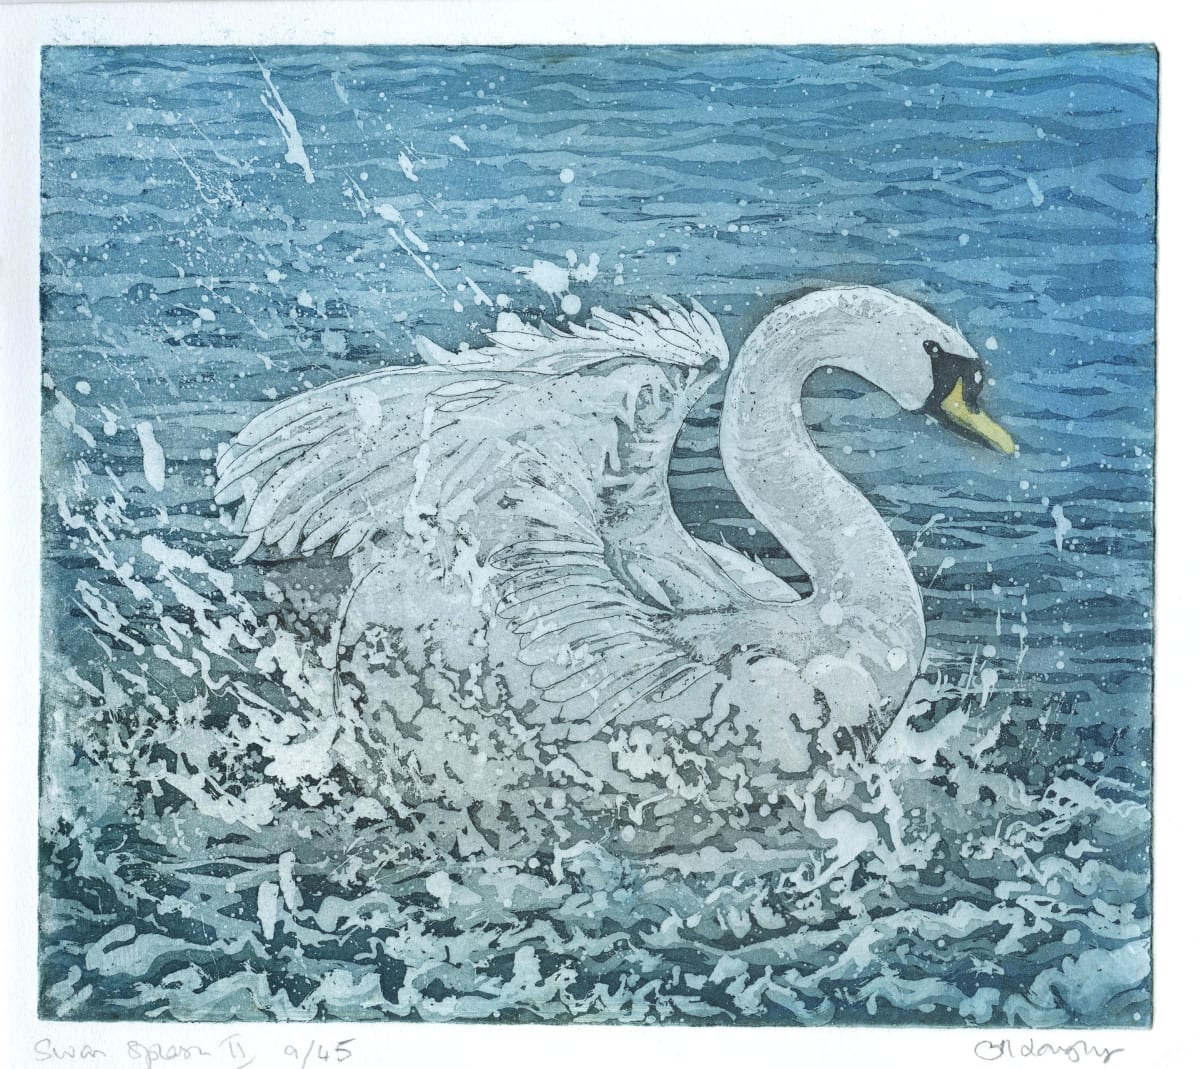 LON179, Swan Splash II 9/45 by Claire Longley